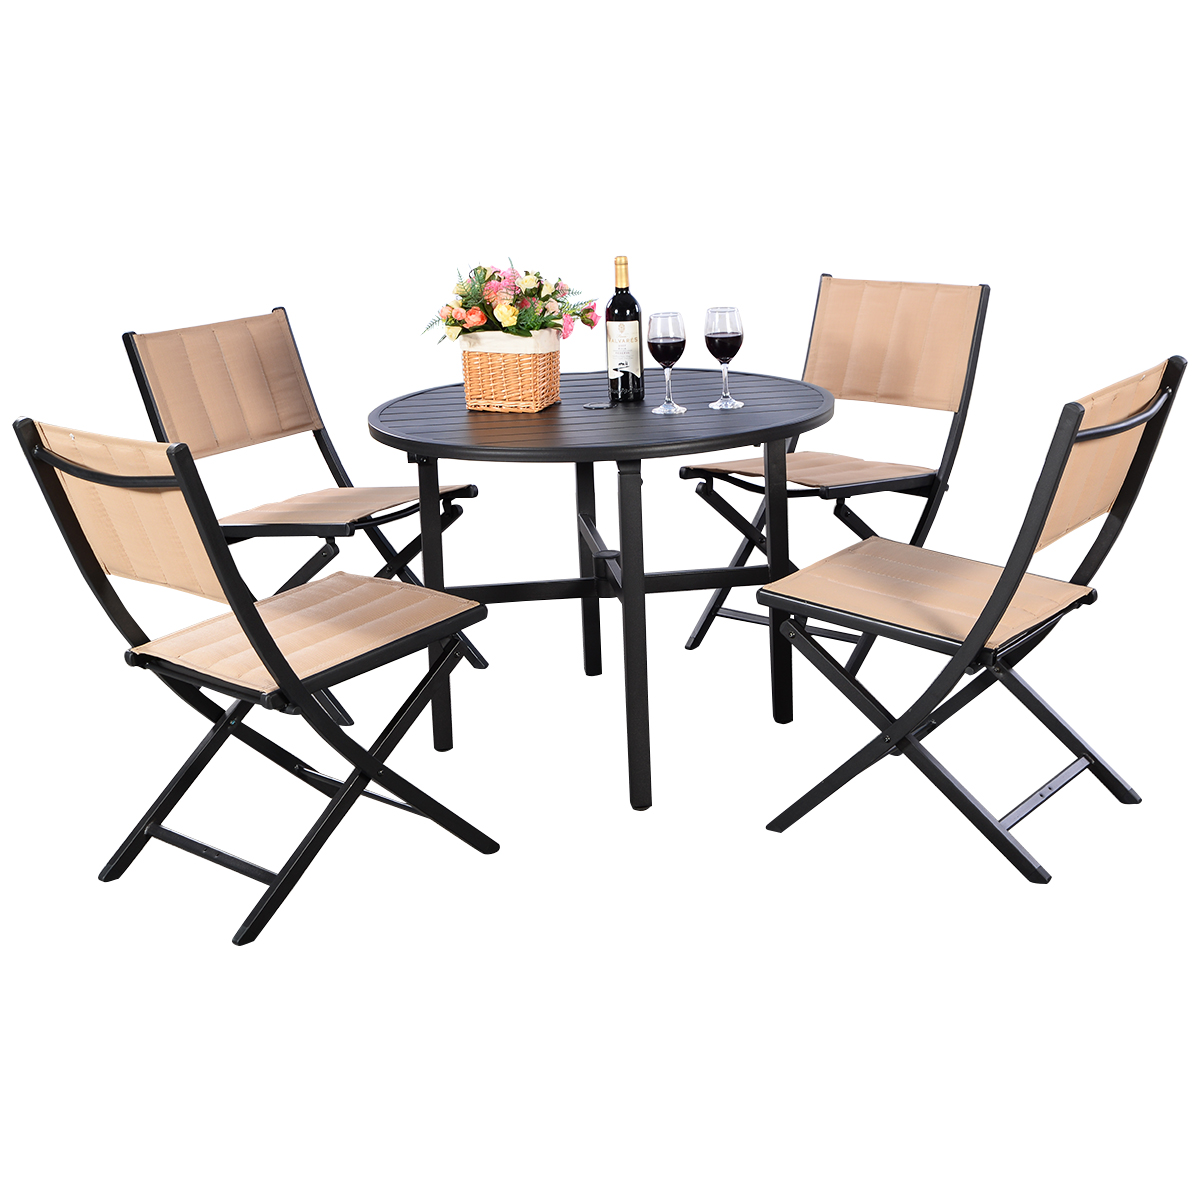 The Backyard Bistro costway 5 pcs patio outdoor folding chairs table furniture set